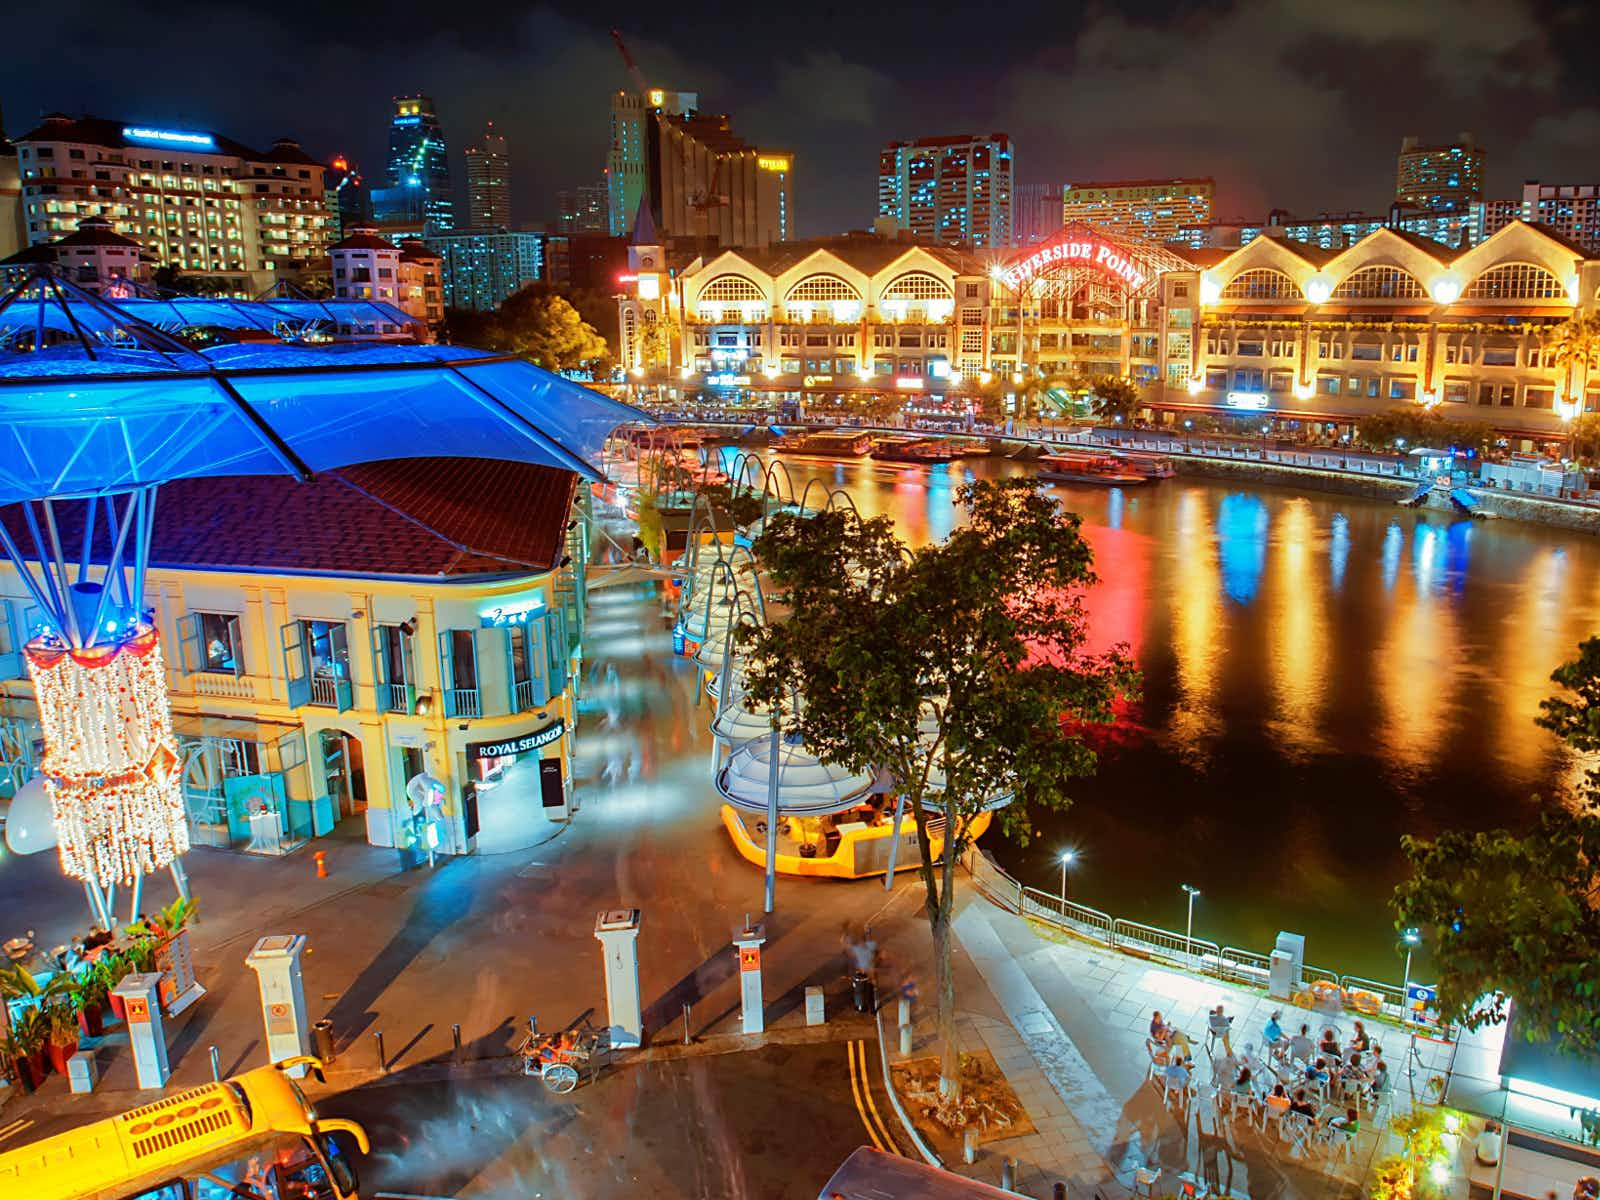 Singapore's colourful Clarke Quay is buzzing as night falls ©wsboon images / Getty Images